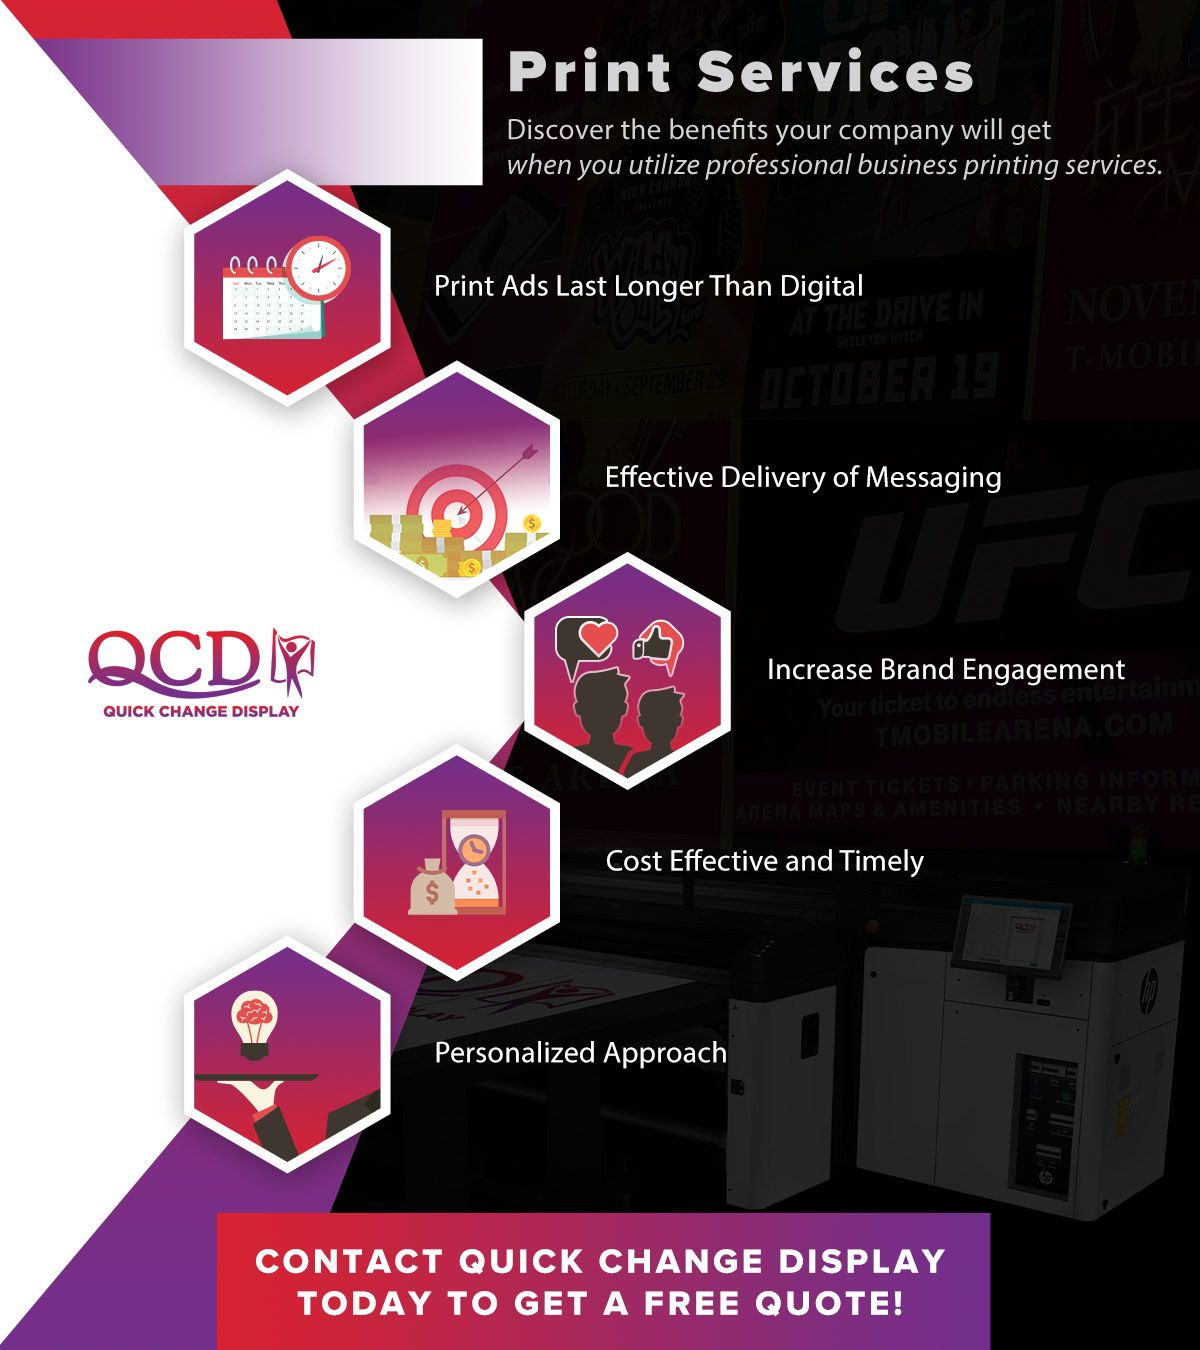 Print Services Infographic